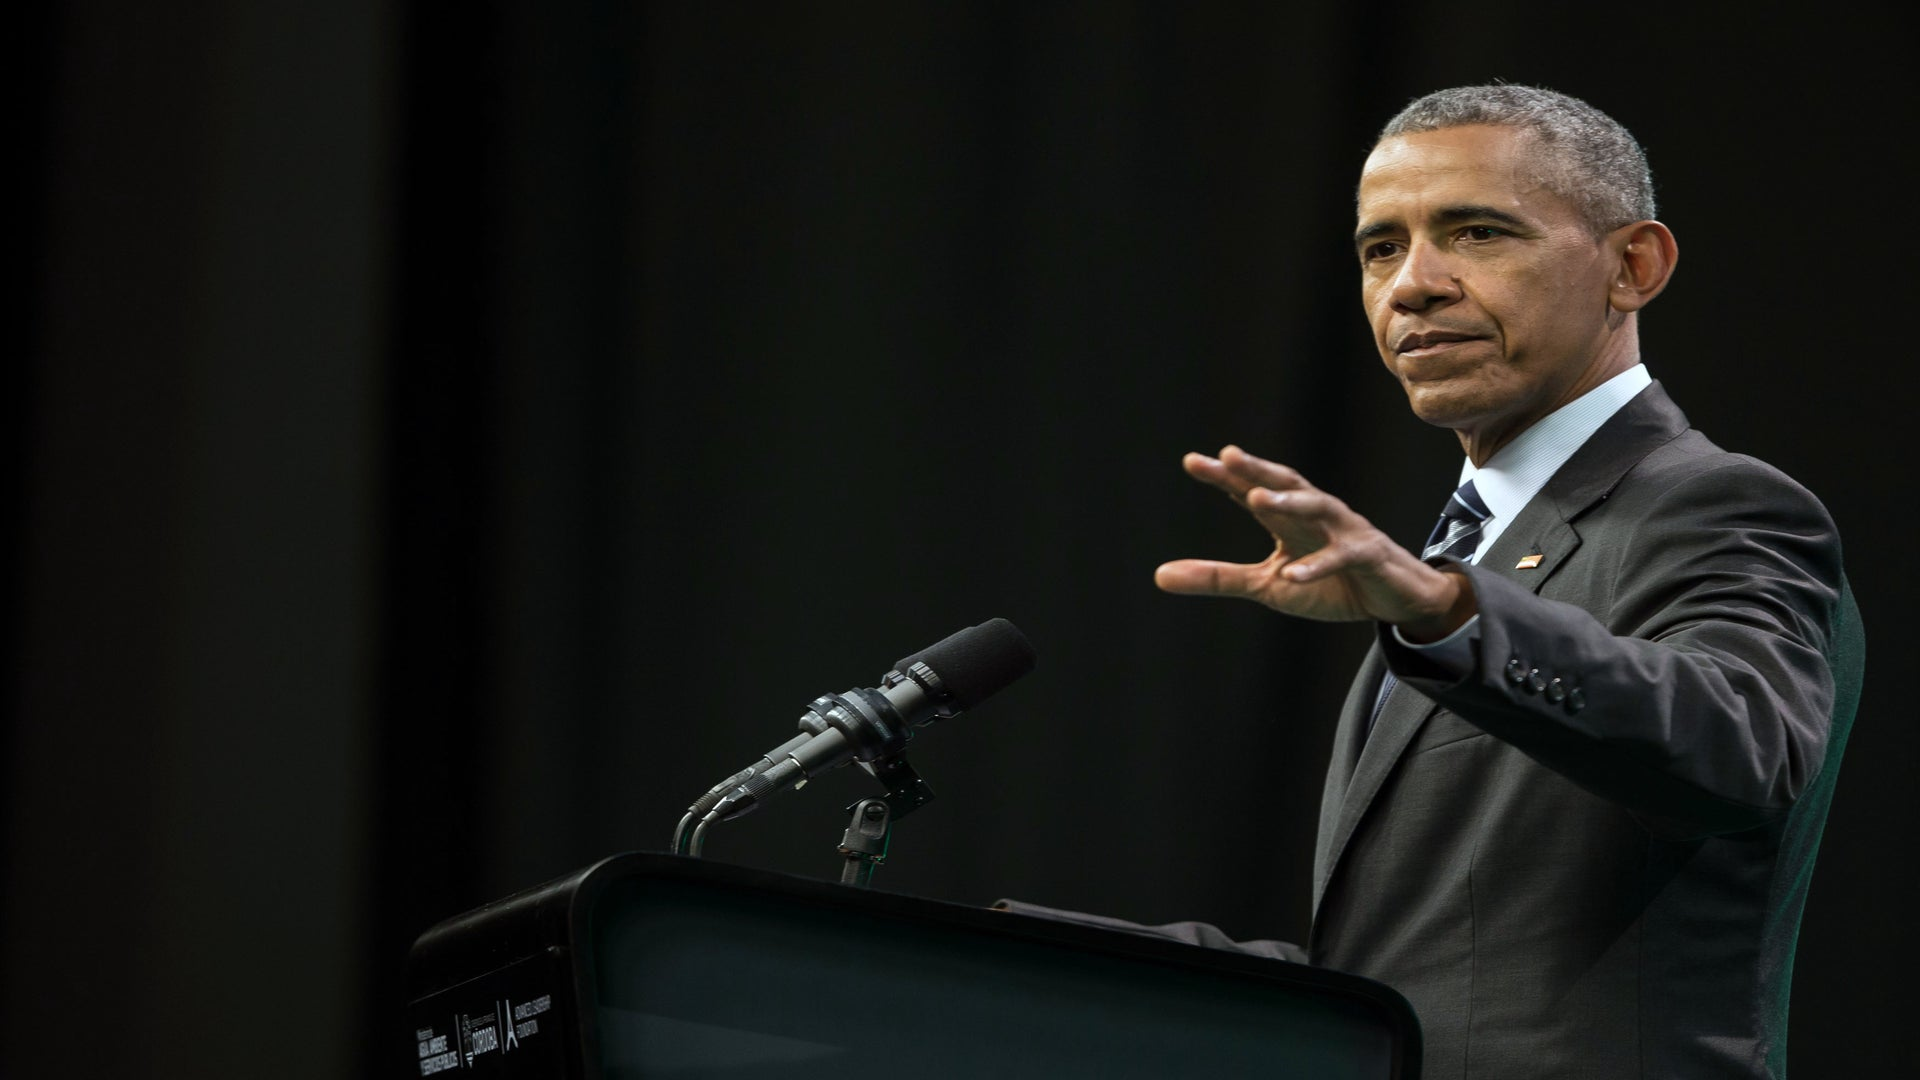 Barack Obama Returns To The Political Arena For The First Time Since Leaving the White House